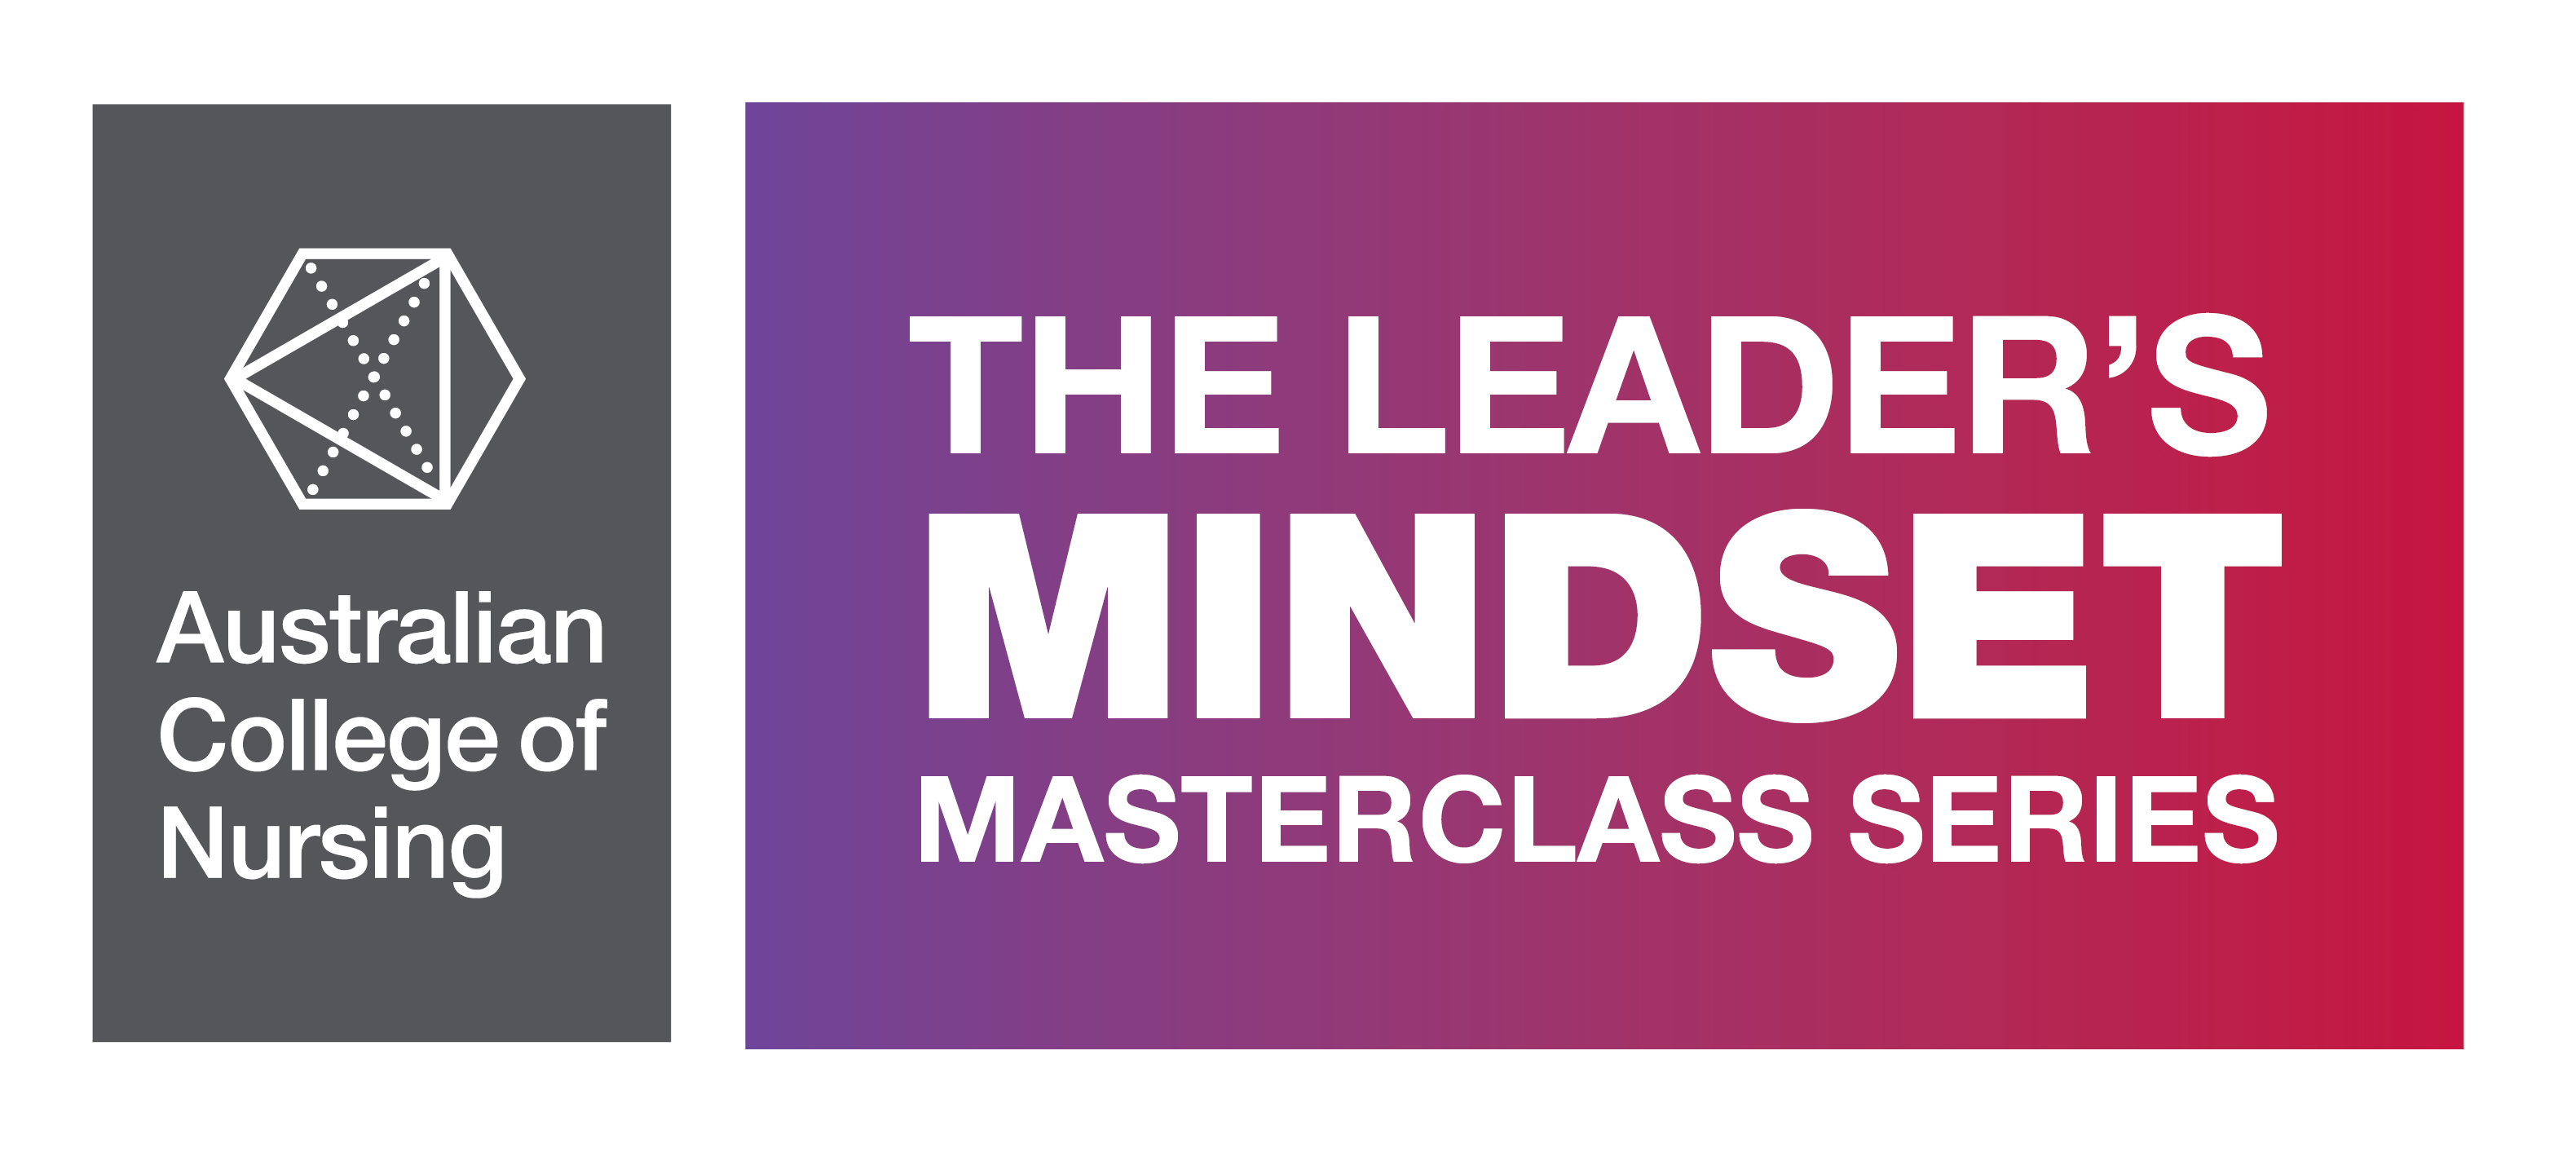 The Leader's Mindset Masterclass Series